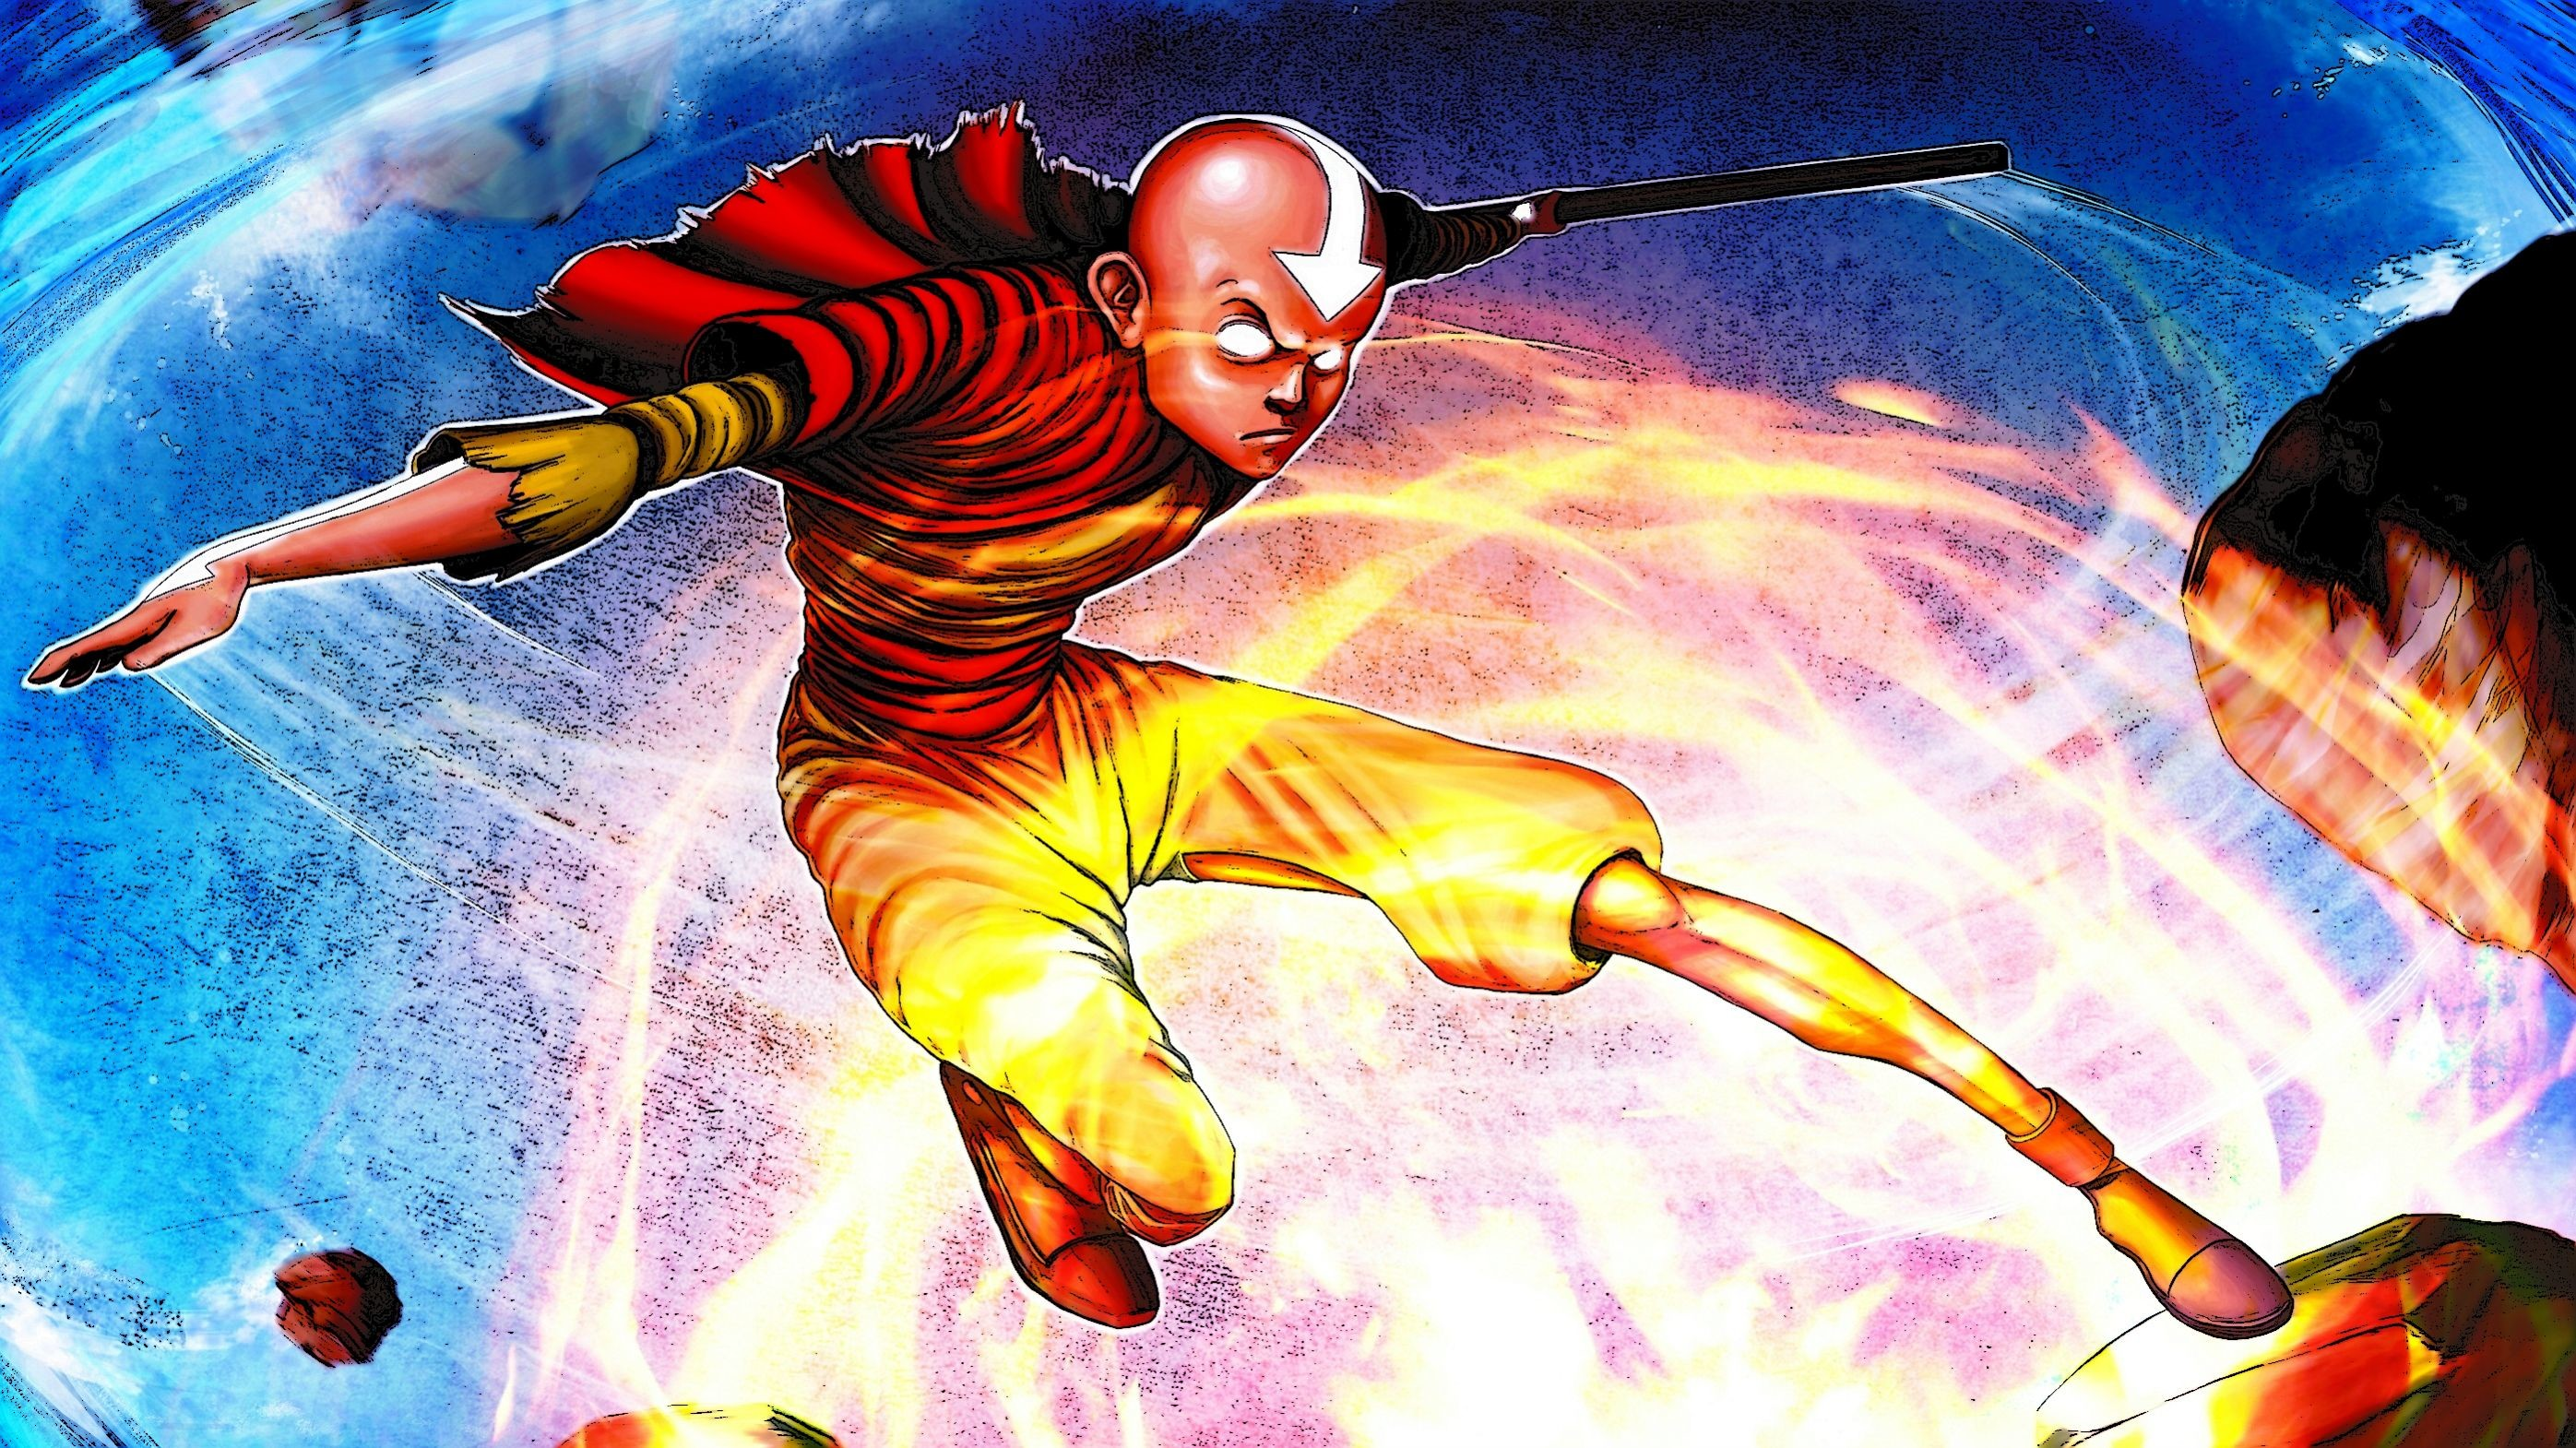 Avatar the Last Airbender Wallpapers (71+ images)